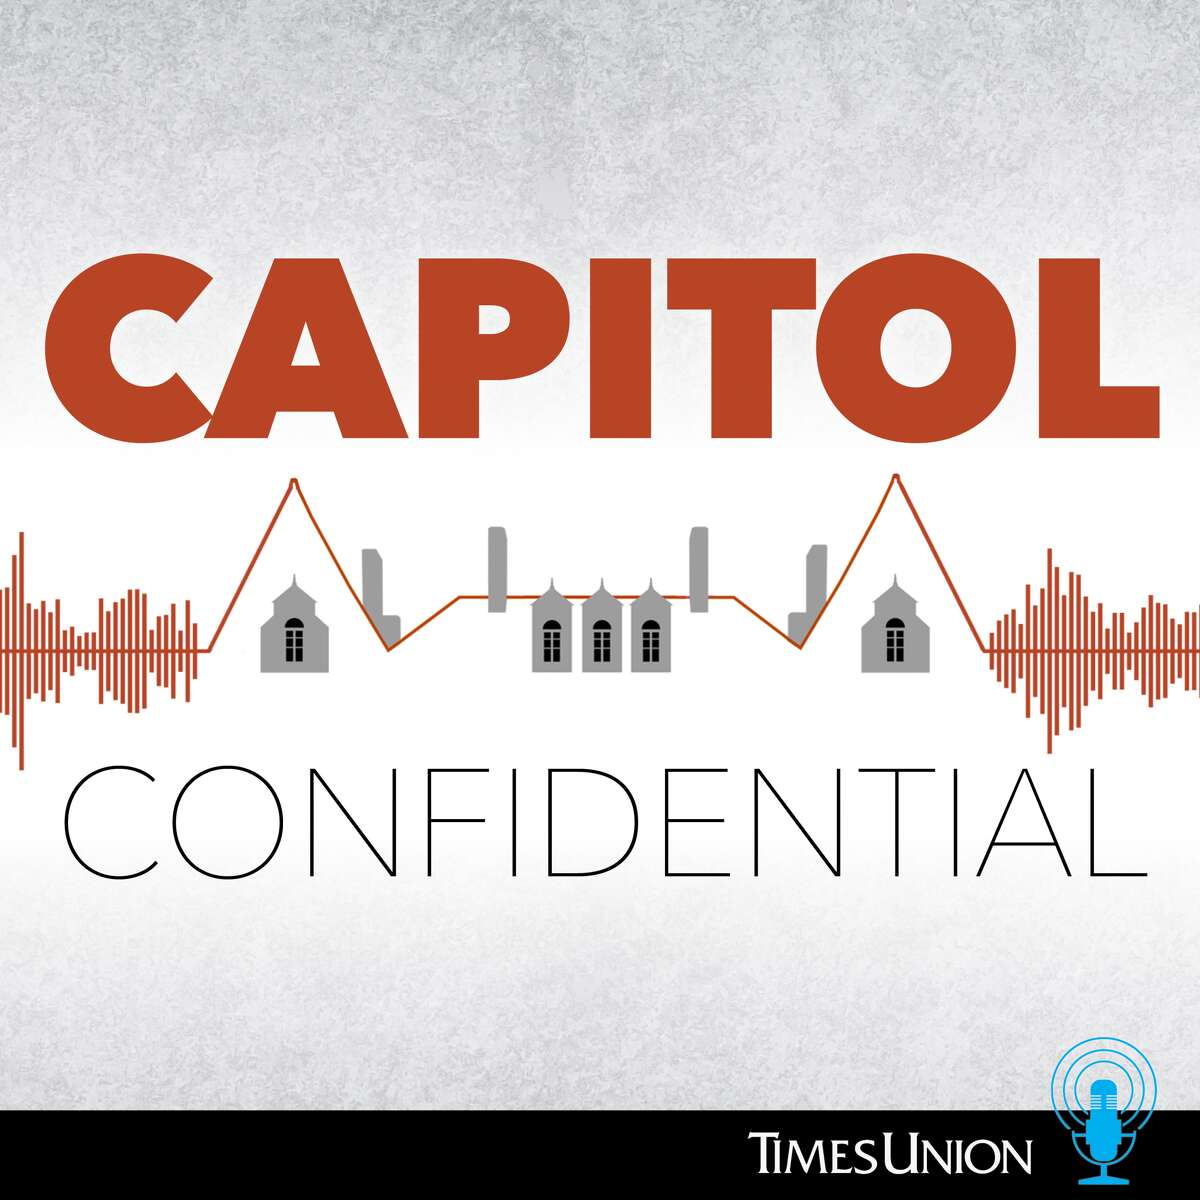 Capitol Bureau reporter Ed McKinley and Washington correspondent Emilie Munson answer these questions and more in this special edition of Capitol Confidential.